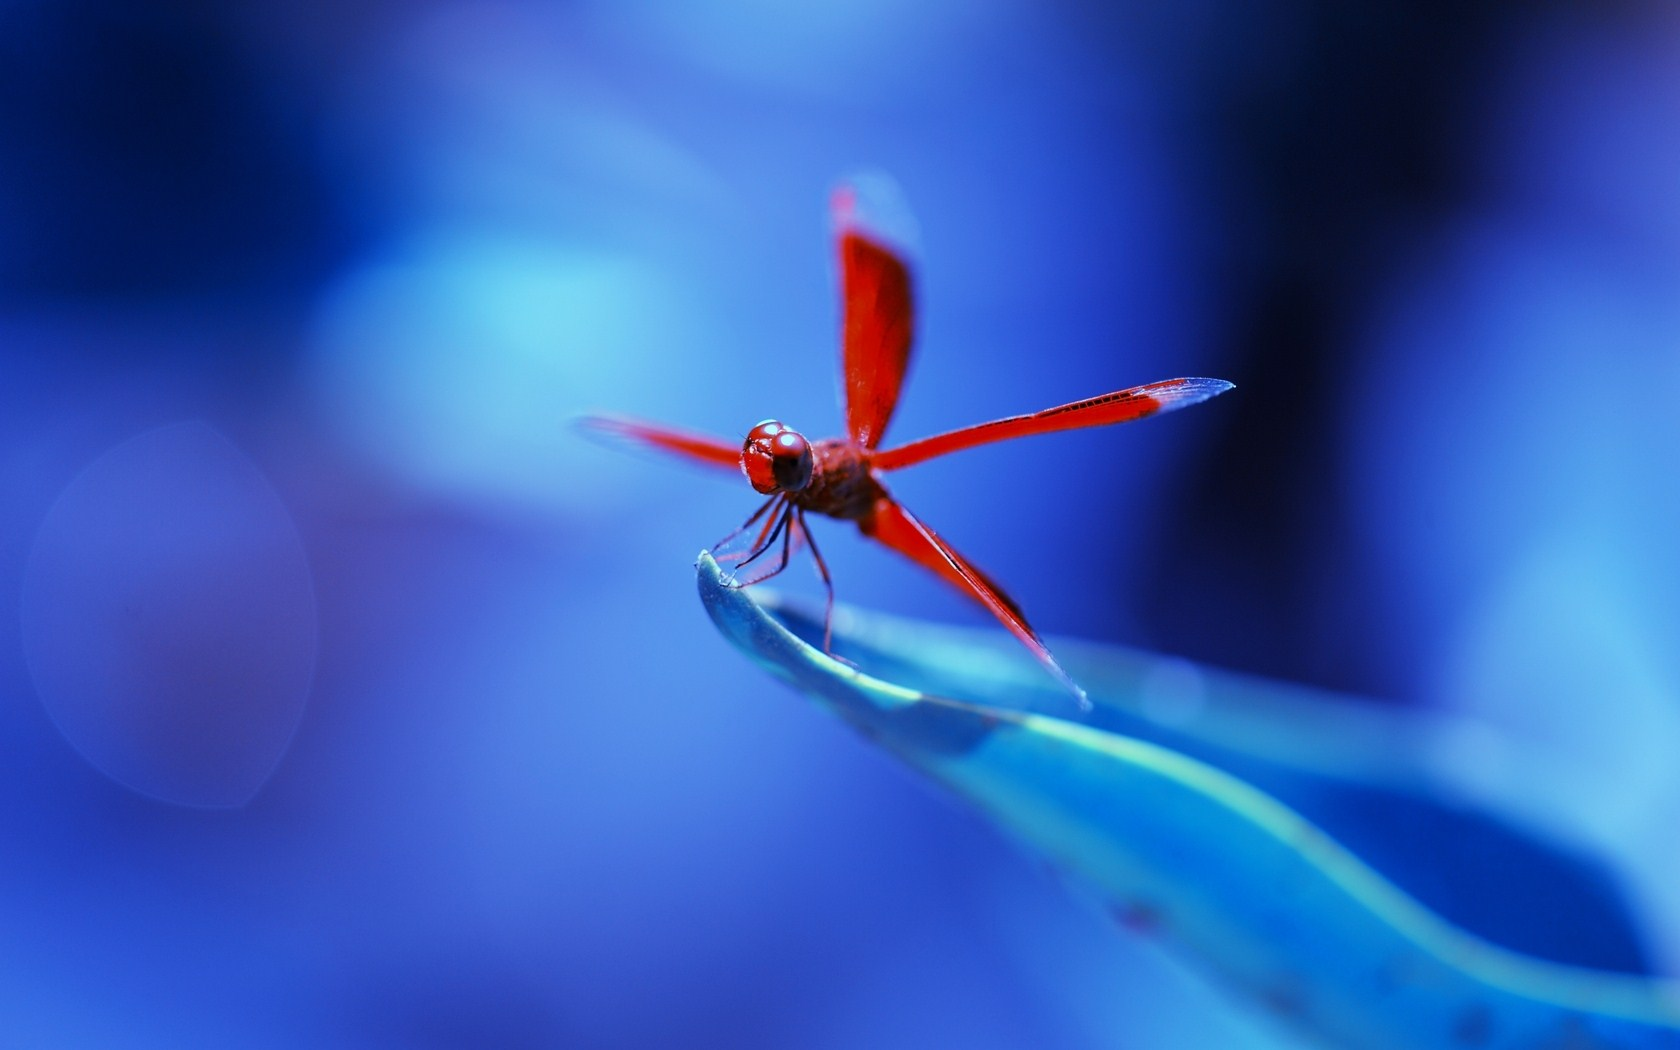 Dragonfly Wallpaper Wallpapers HD Quality 1680x1050